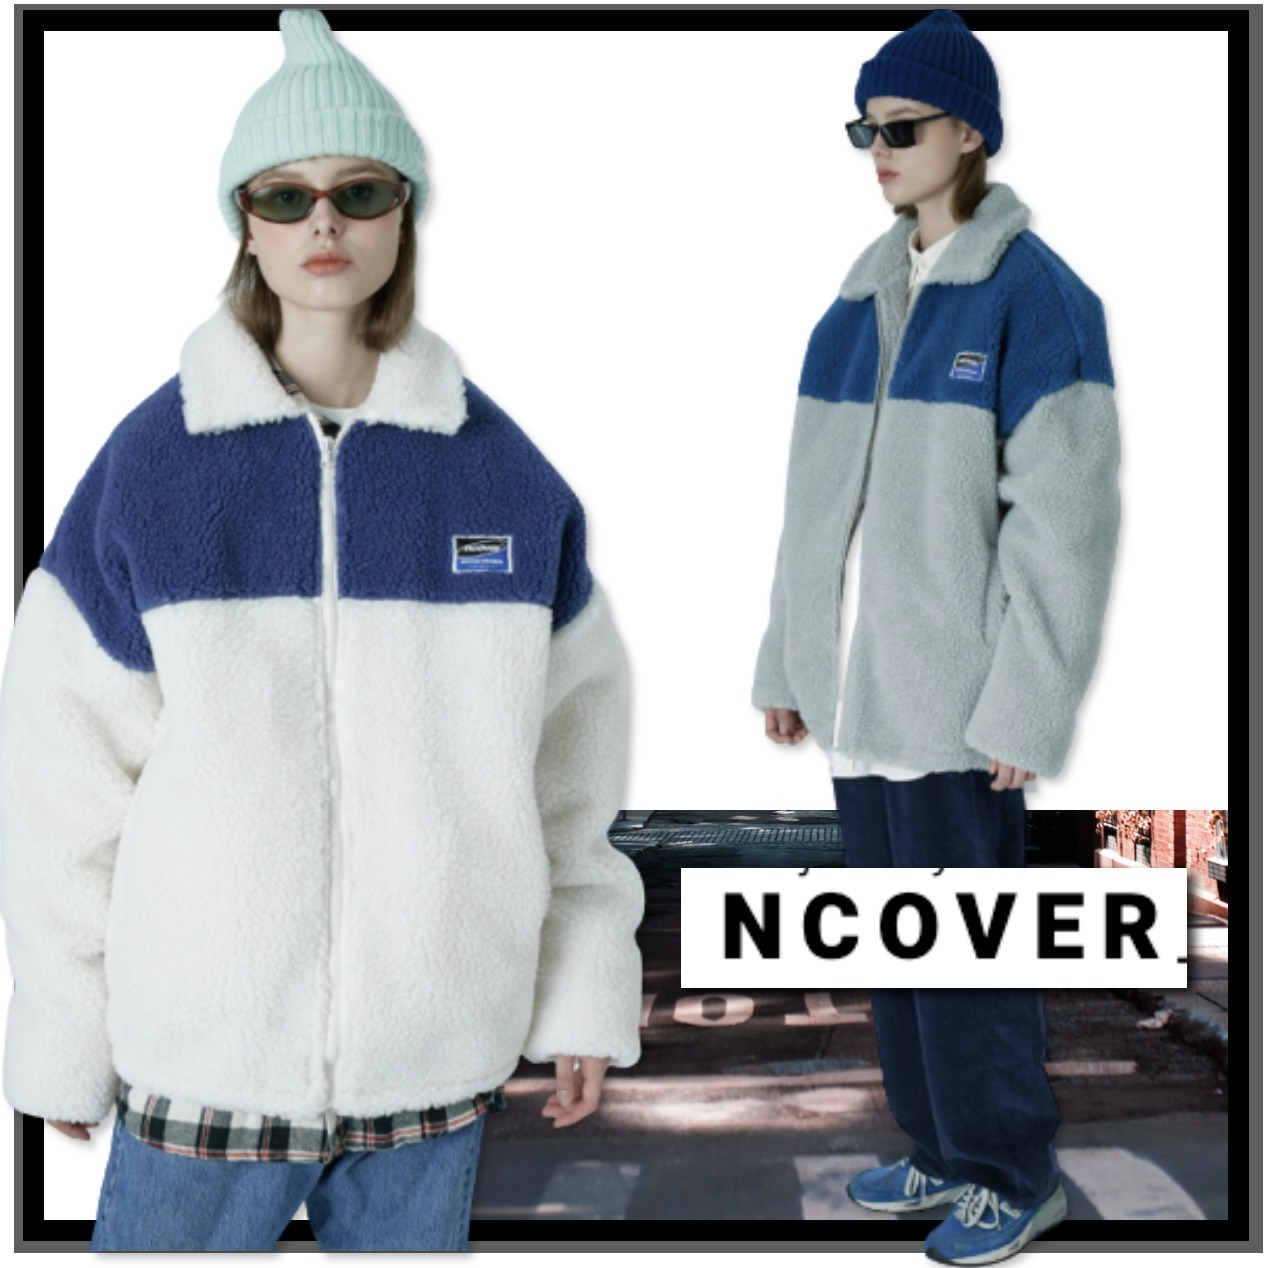 shop ncover clothing